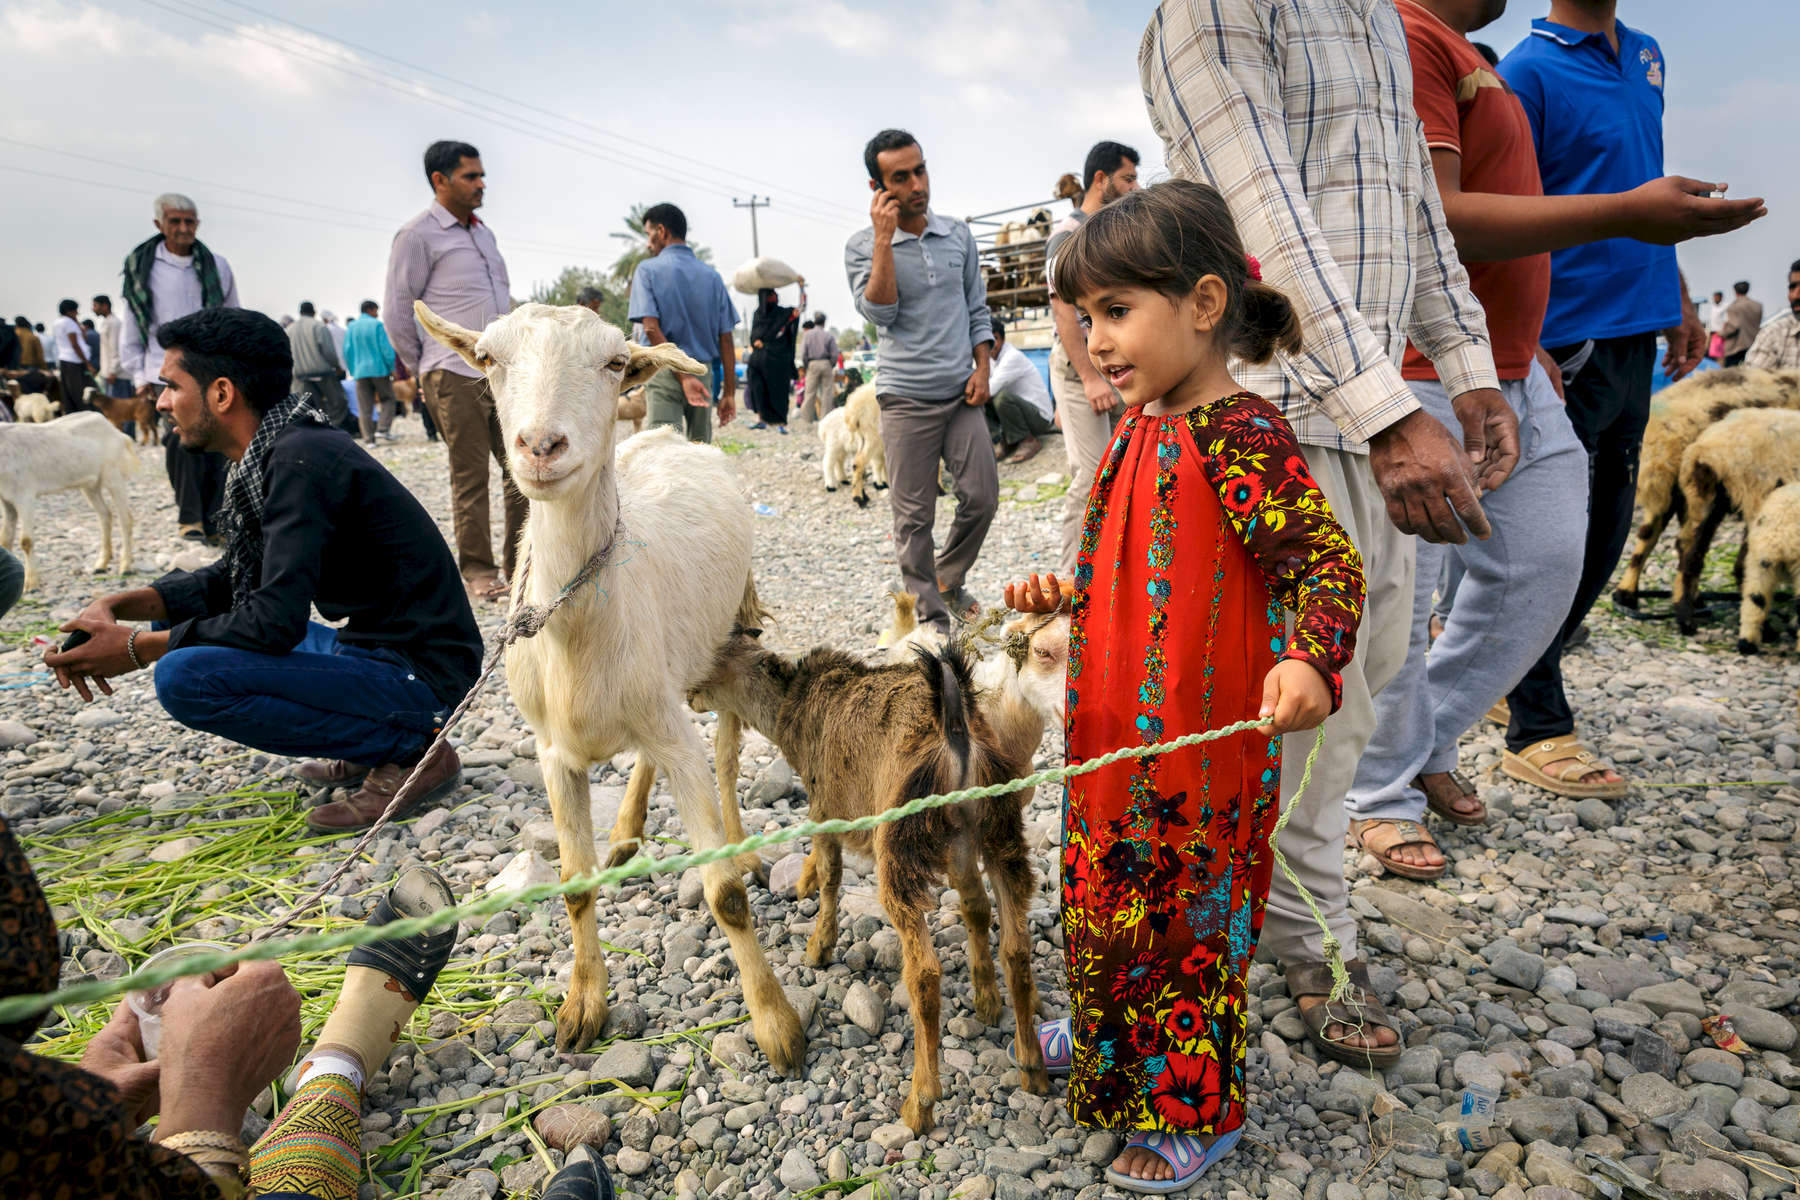 A young girl in a brilliant red outfit helping her parents with the mornings business trading livestock in the 'Panjshambe Bazar', Minab.